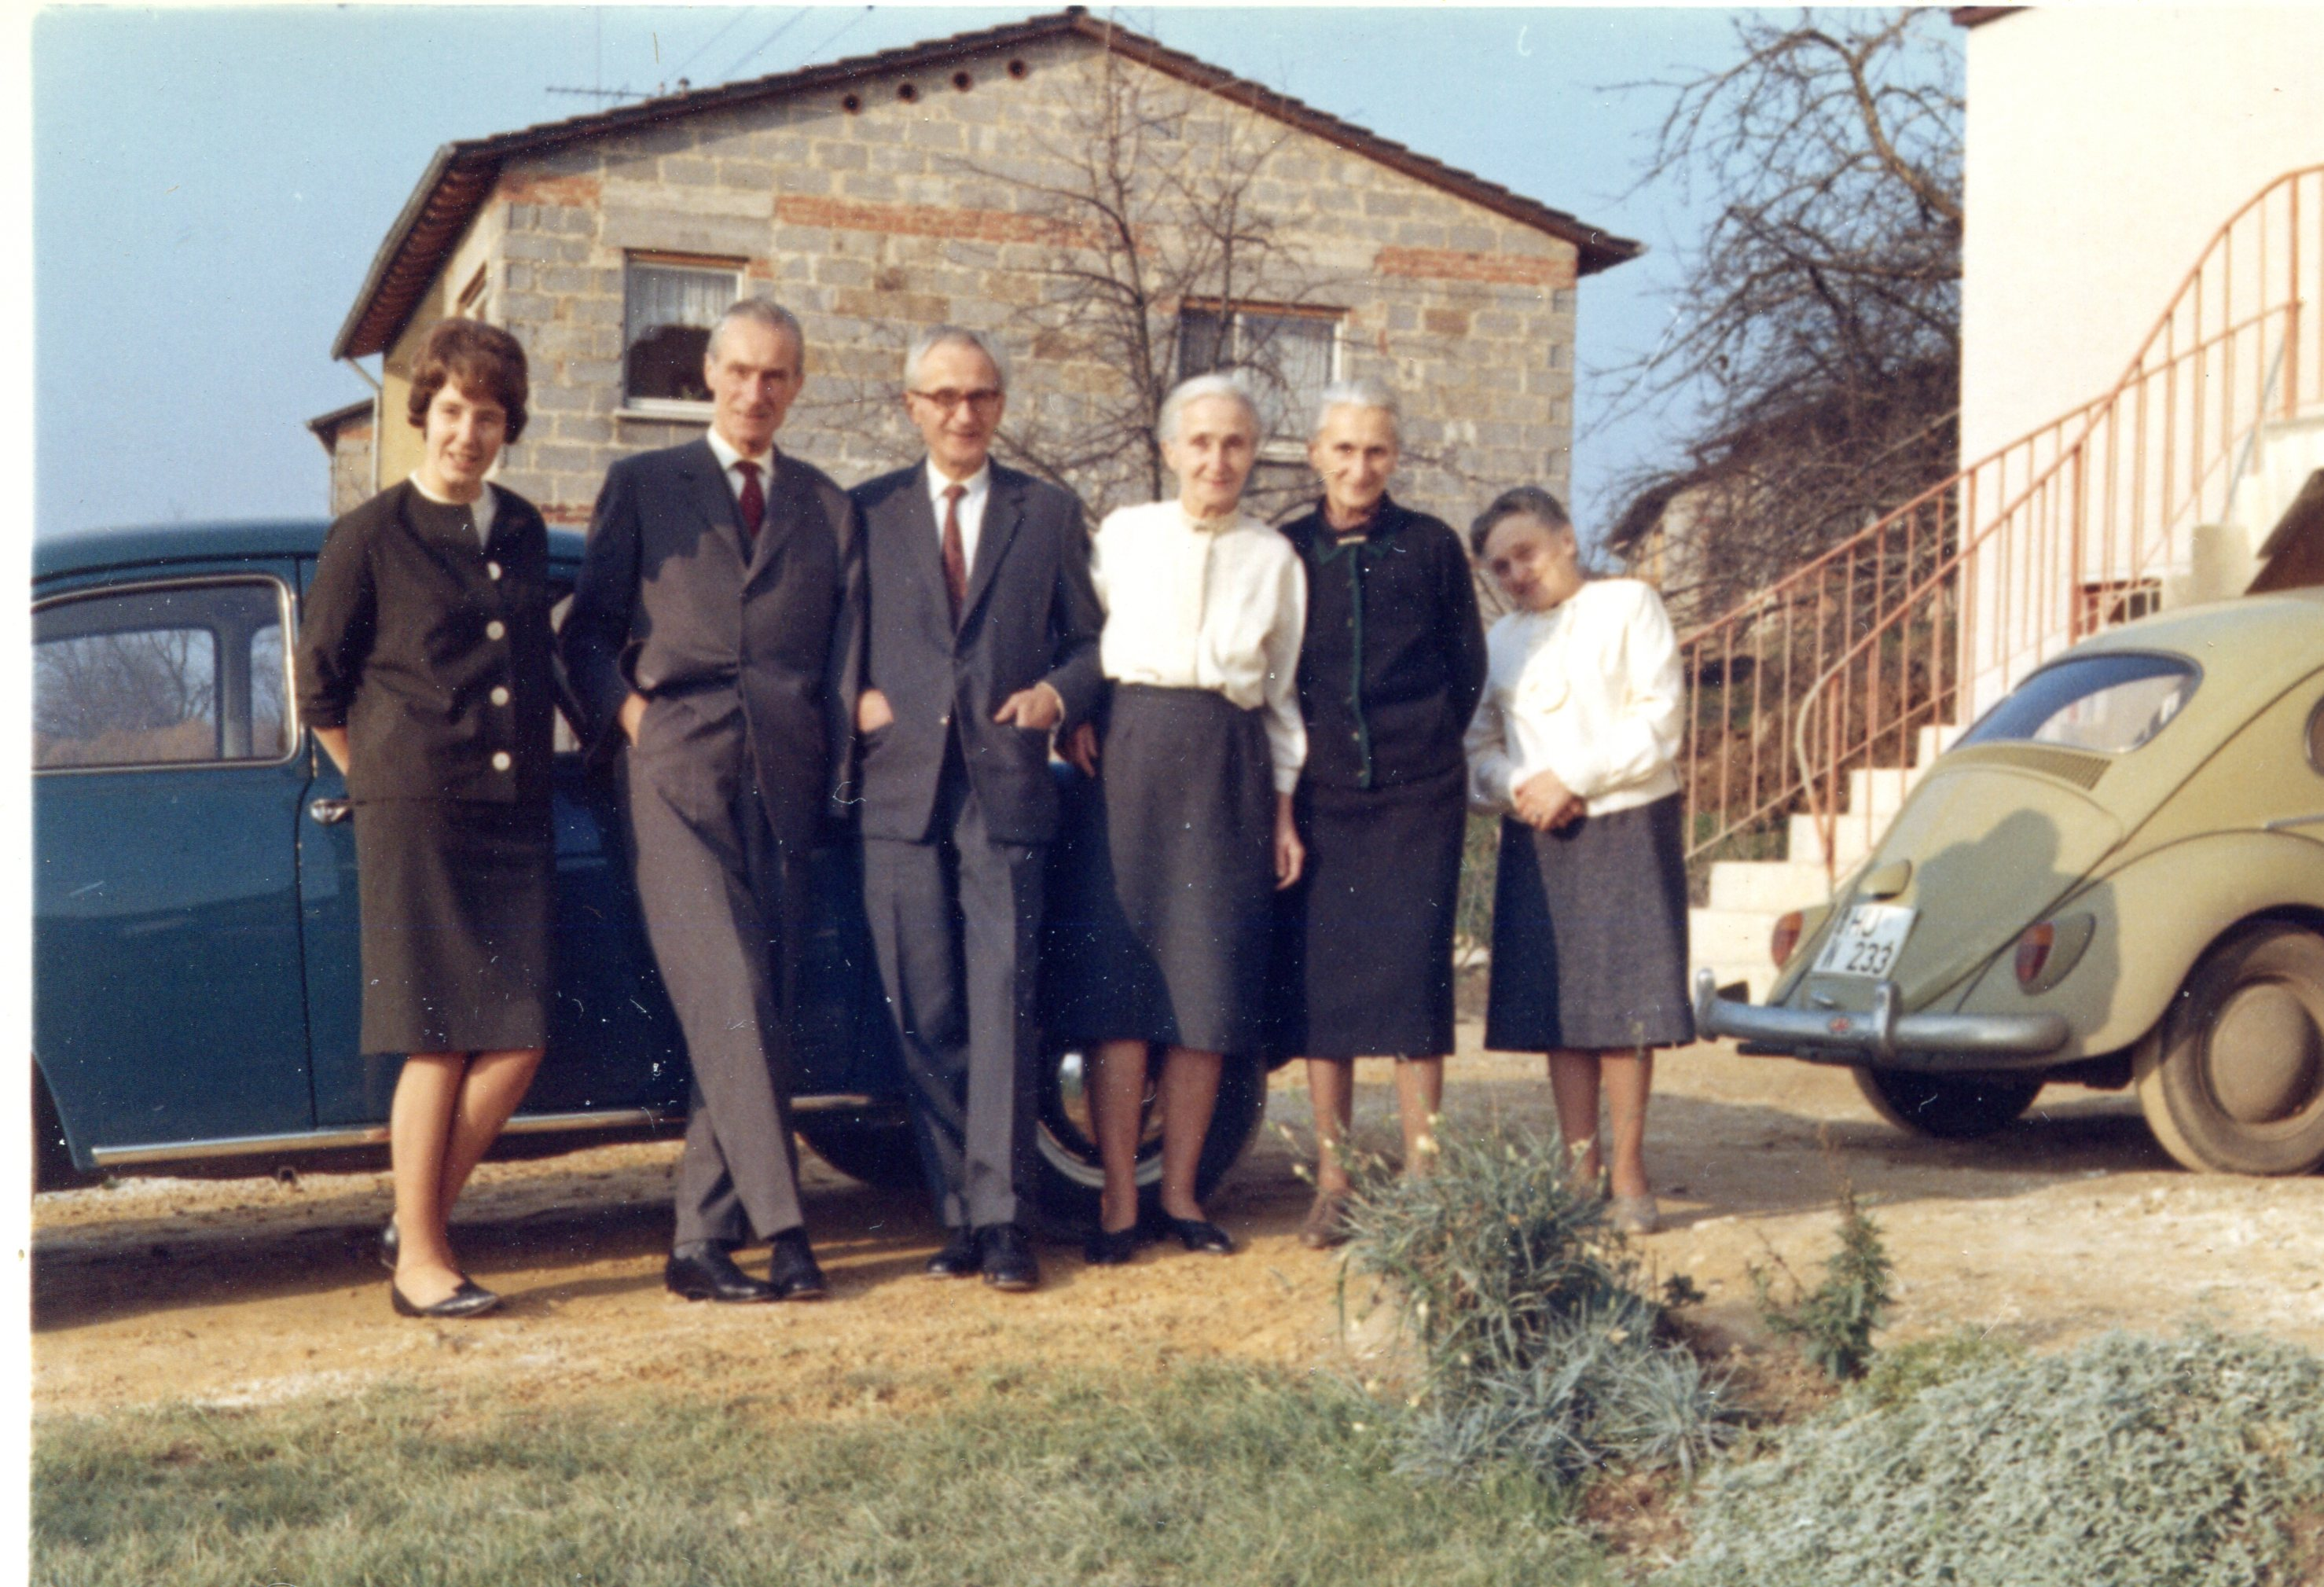 The Kegler Family with Gerhard and his daughter Helga on the left